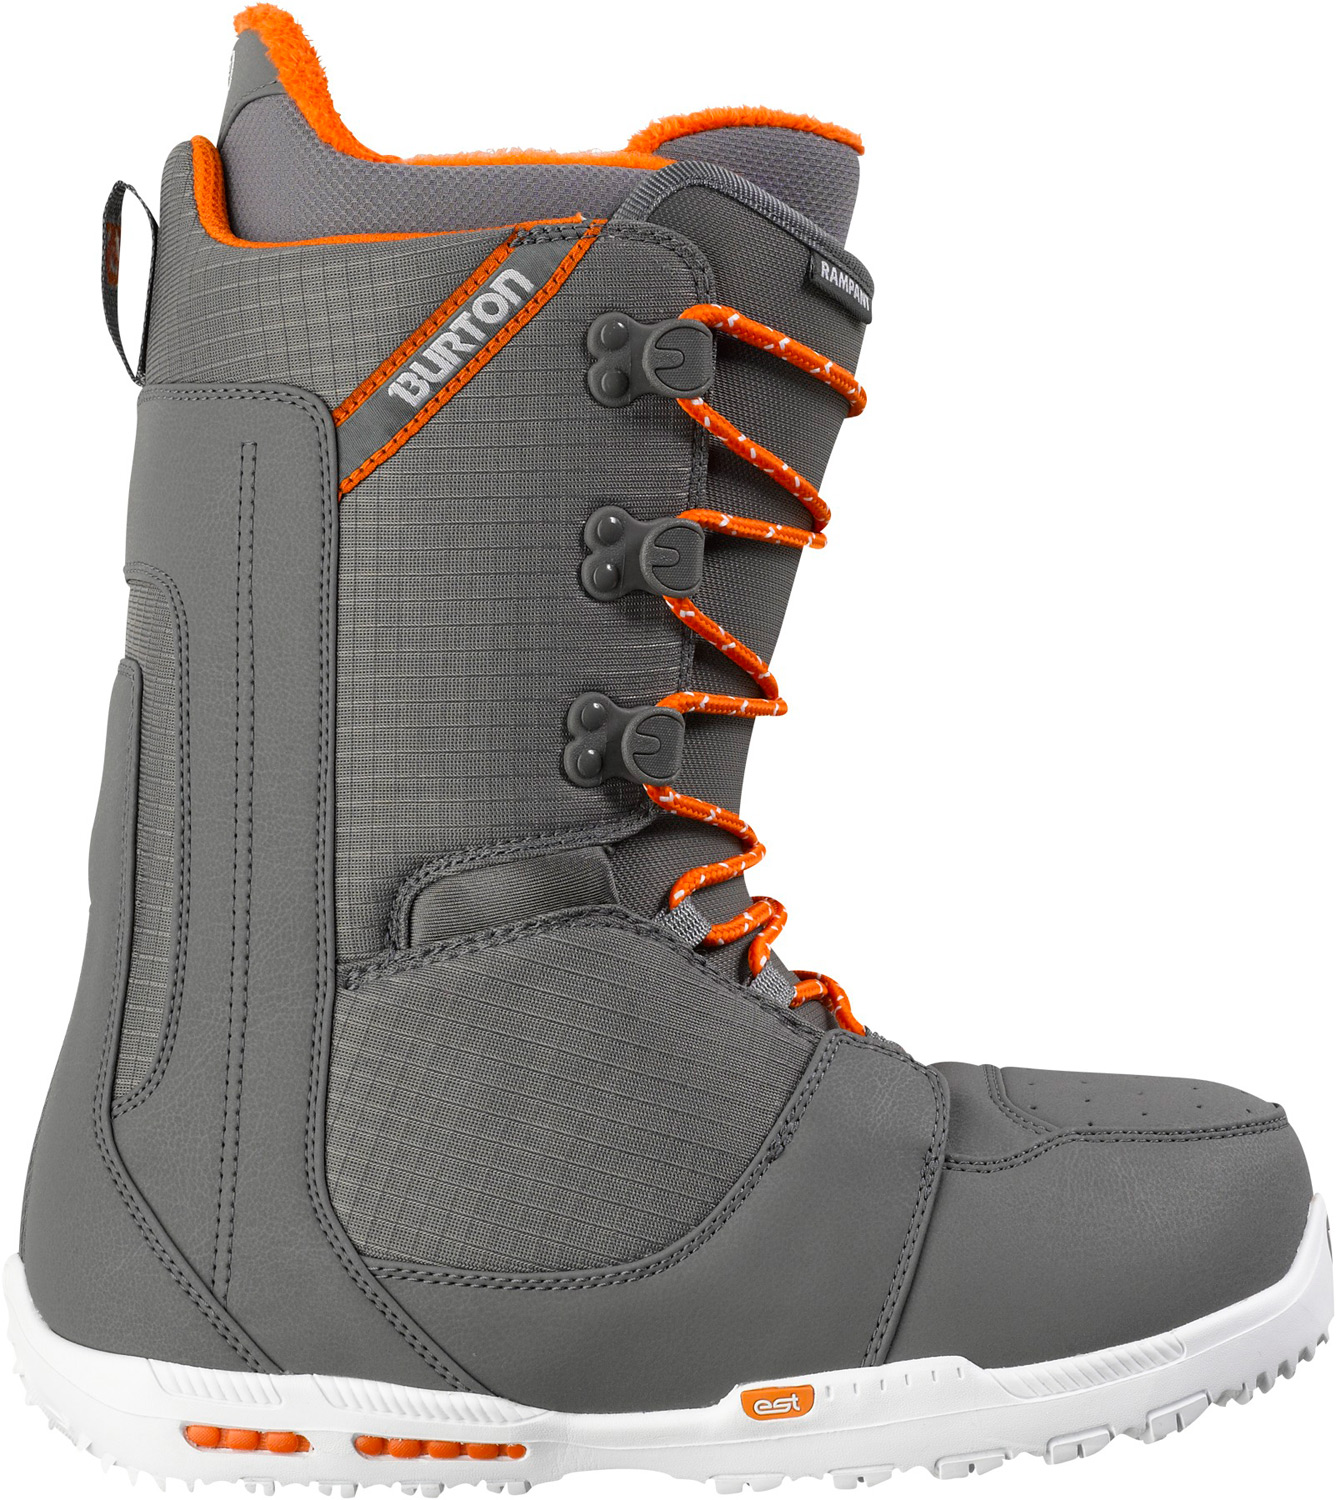 Snowboard Newfound flex and feel in Burton's lightest weight boot.Key Features of the Burton Rampant Snowboard Boots: Support: 4 Shrinkage™ Footprint Reduction Technology Lacing: Traditional Liner: NEW Imprint™ 2 Liner with NEW Lock-Up Cuff, NEW Velcro® Closure System, and NEW Man Fur Cushioning: DynoLite EST™ Optimized Outsole with B3 Gel Flex and Response: Crossbone Upper Cuff, Flex Spine Backstay, and Medium Flex Thin Profile 3D® Molded Tongue Comfort: NEW Total Comfort Construction, Snow-Proof Internal Gusset, and Level 1 Molded EVA Footbed - $149.95